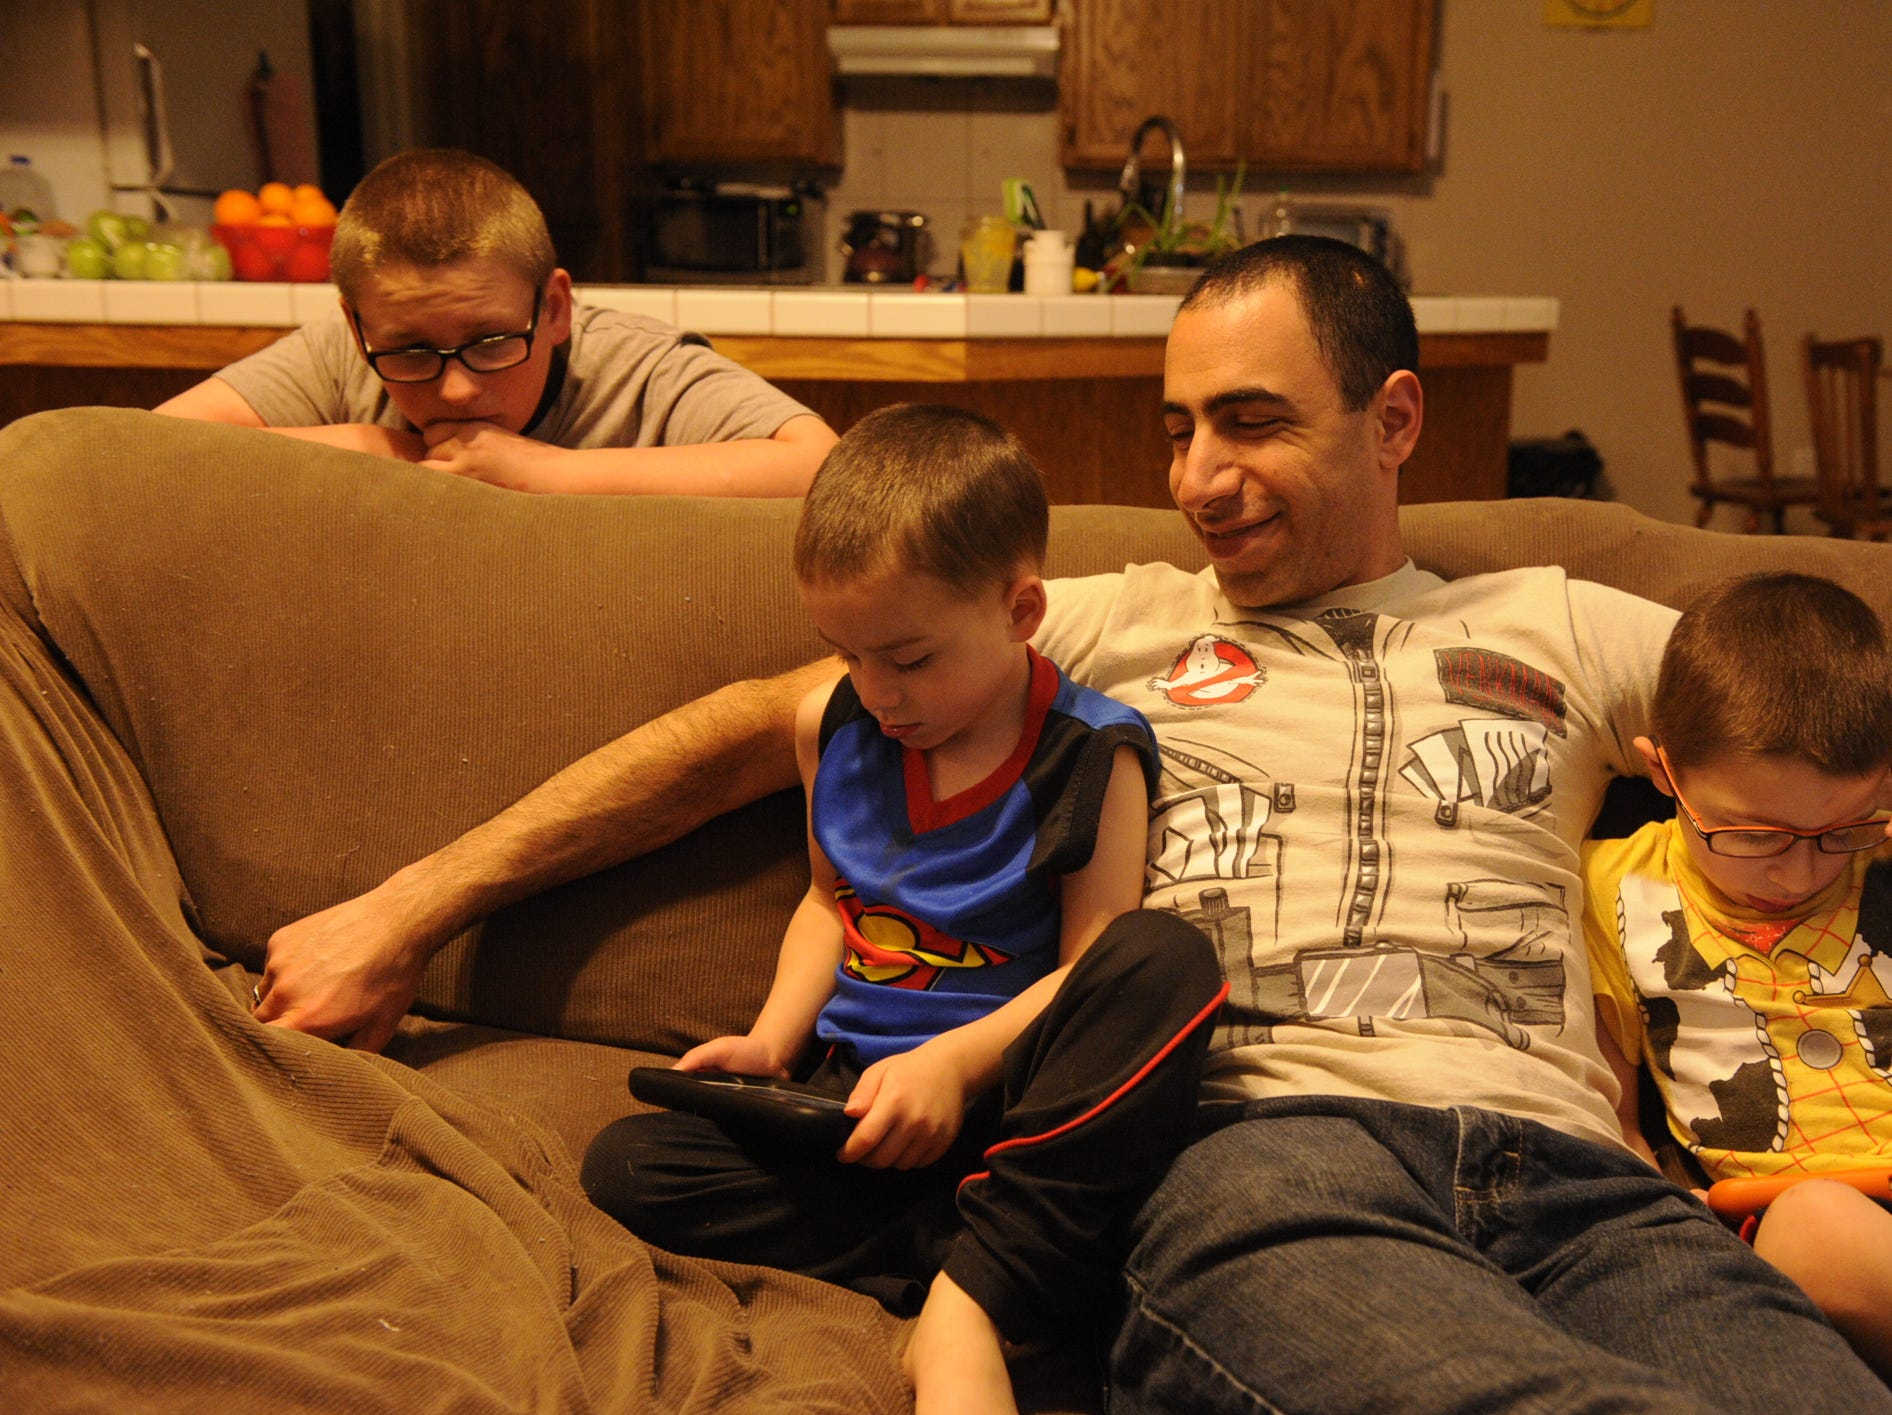 Robert Williams, 13, looks on as his brother Olly Ajluni, 3, plays on a computer with the younger boys' father, David Ajluni, 32. At right is the boys' brother Joey Ajluni, 5. Olly is in remission for Langerhan Cell Histiocytosis (LCH), an autoimmune cancer hybrid disease.